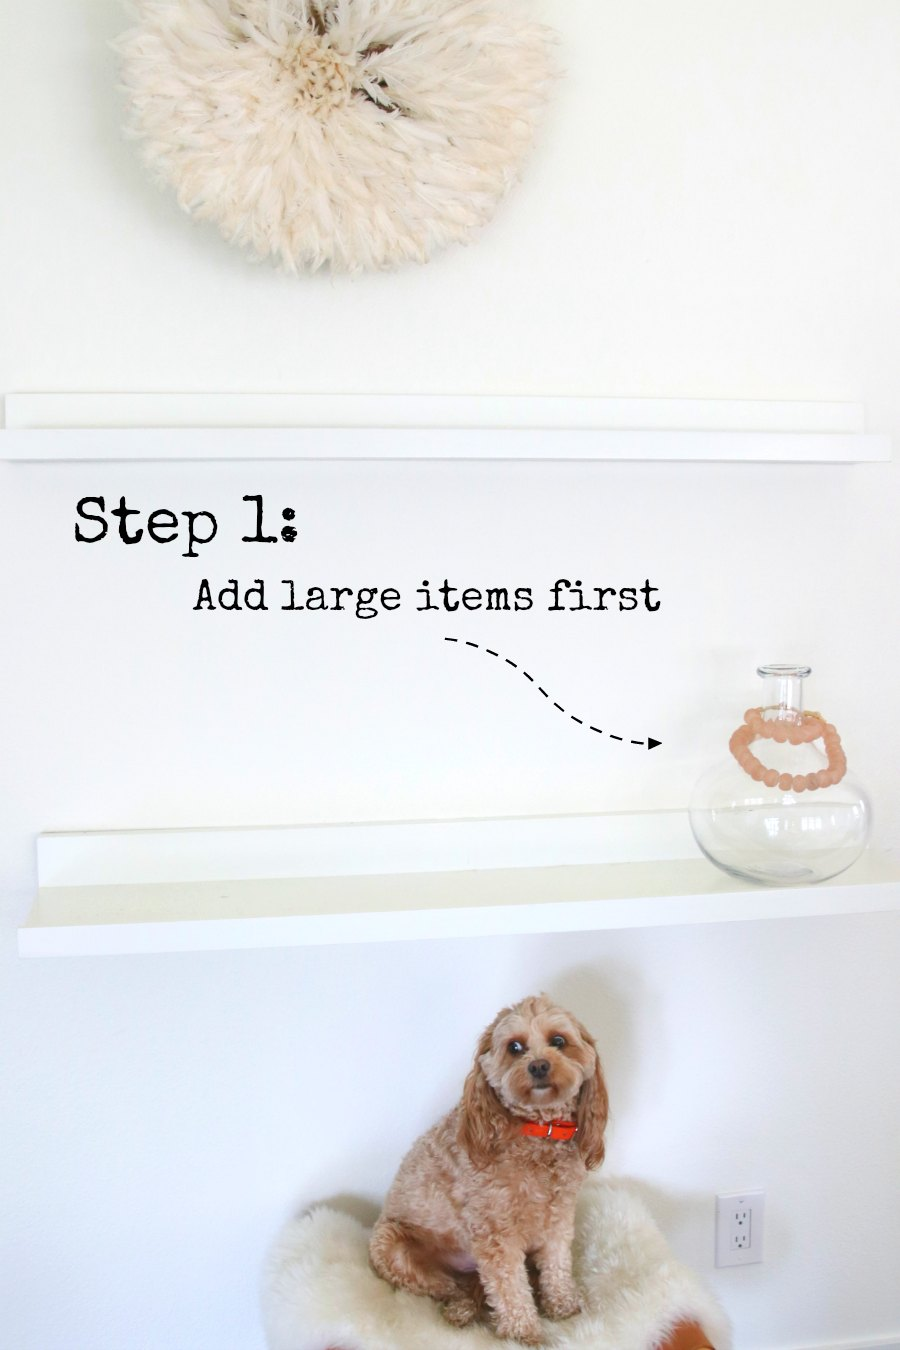 Step by Step Instructions on how to style your home!